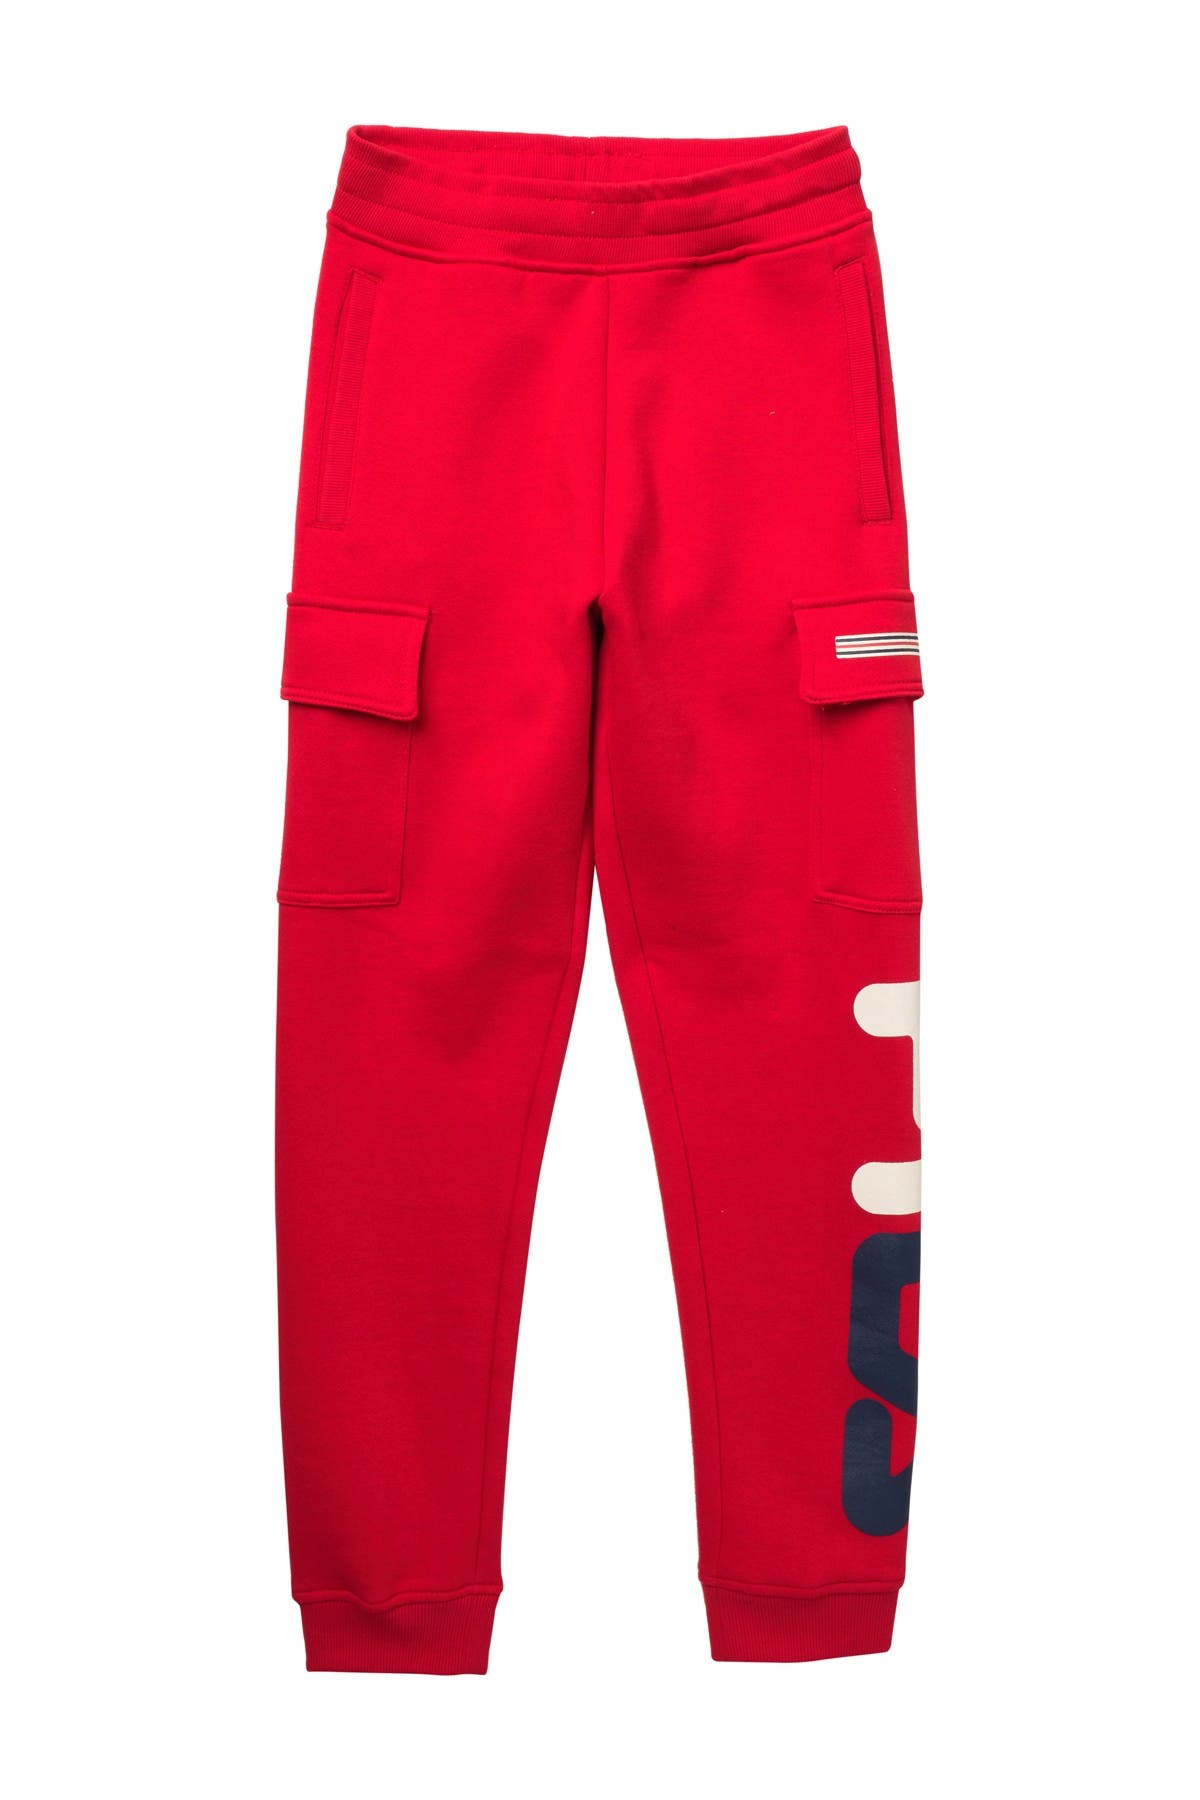 Image of FILA USA Cargo Jogger Pants